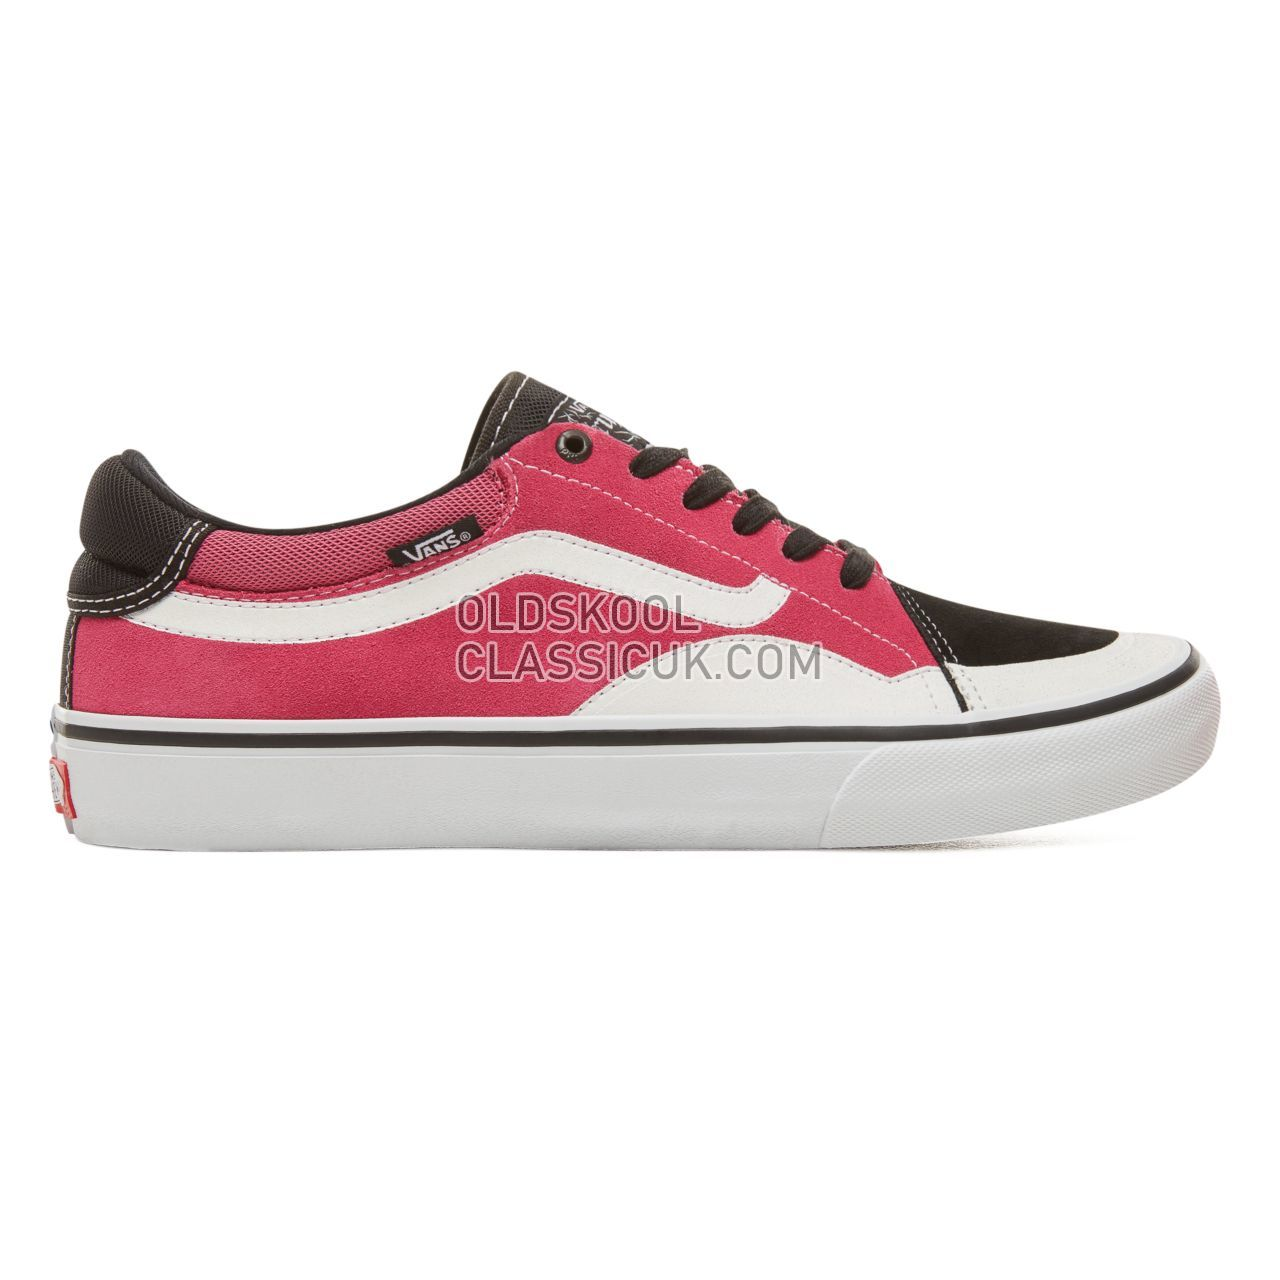 Vans TNT Advanced Prototype Pro Sneakers Mens Black/Magenta/White VA3TJXLJN Shoes